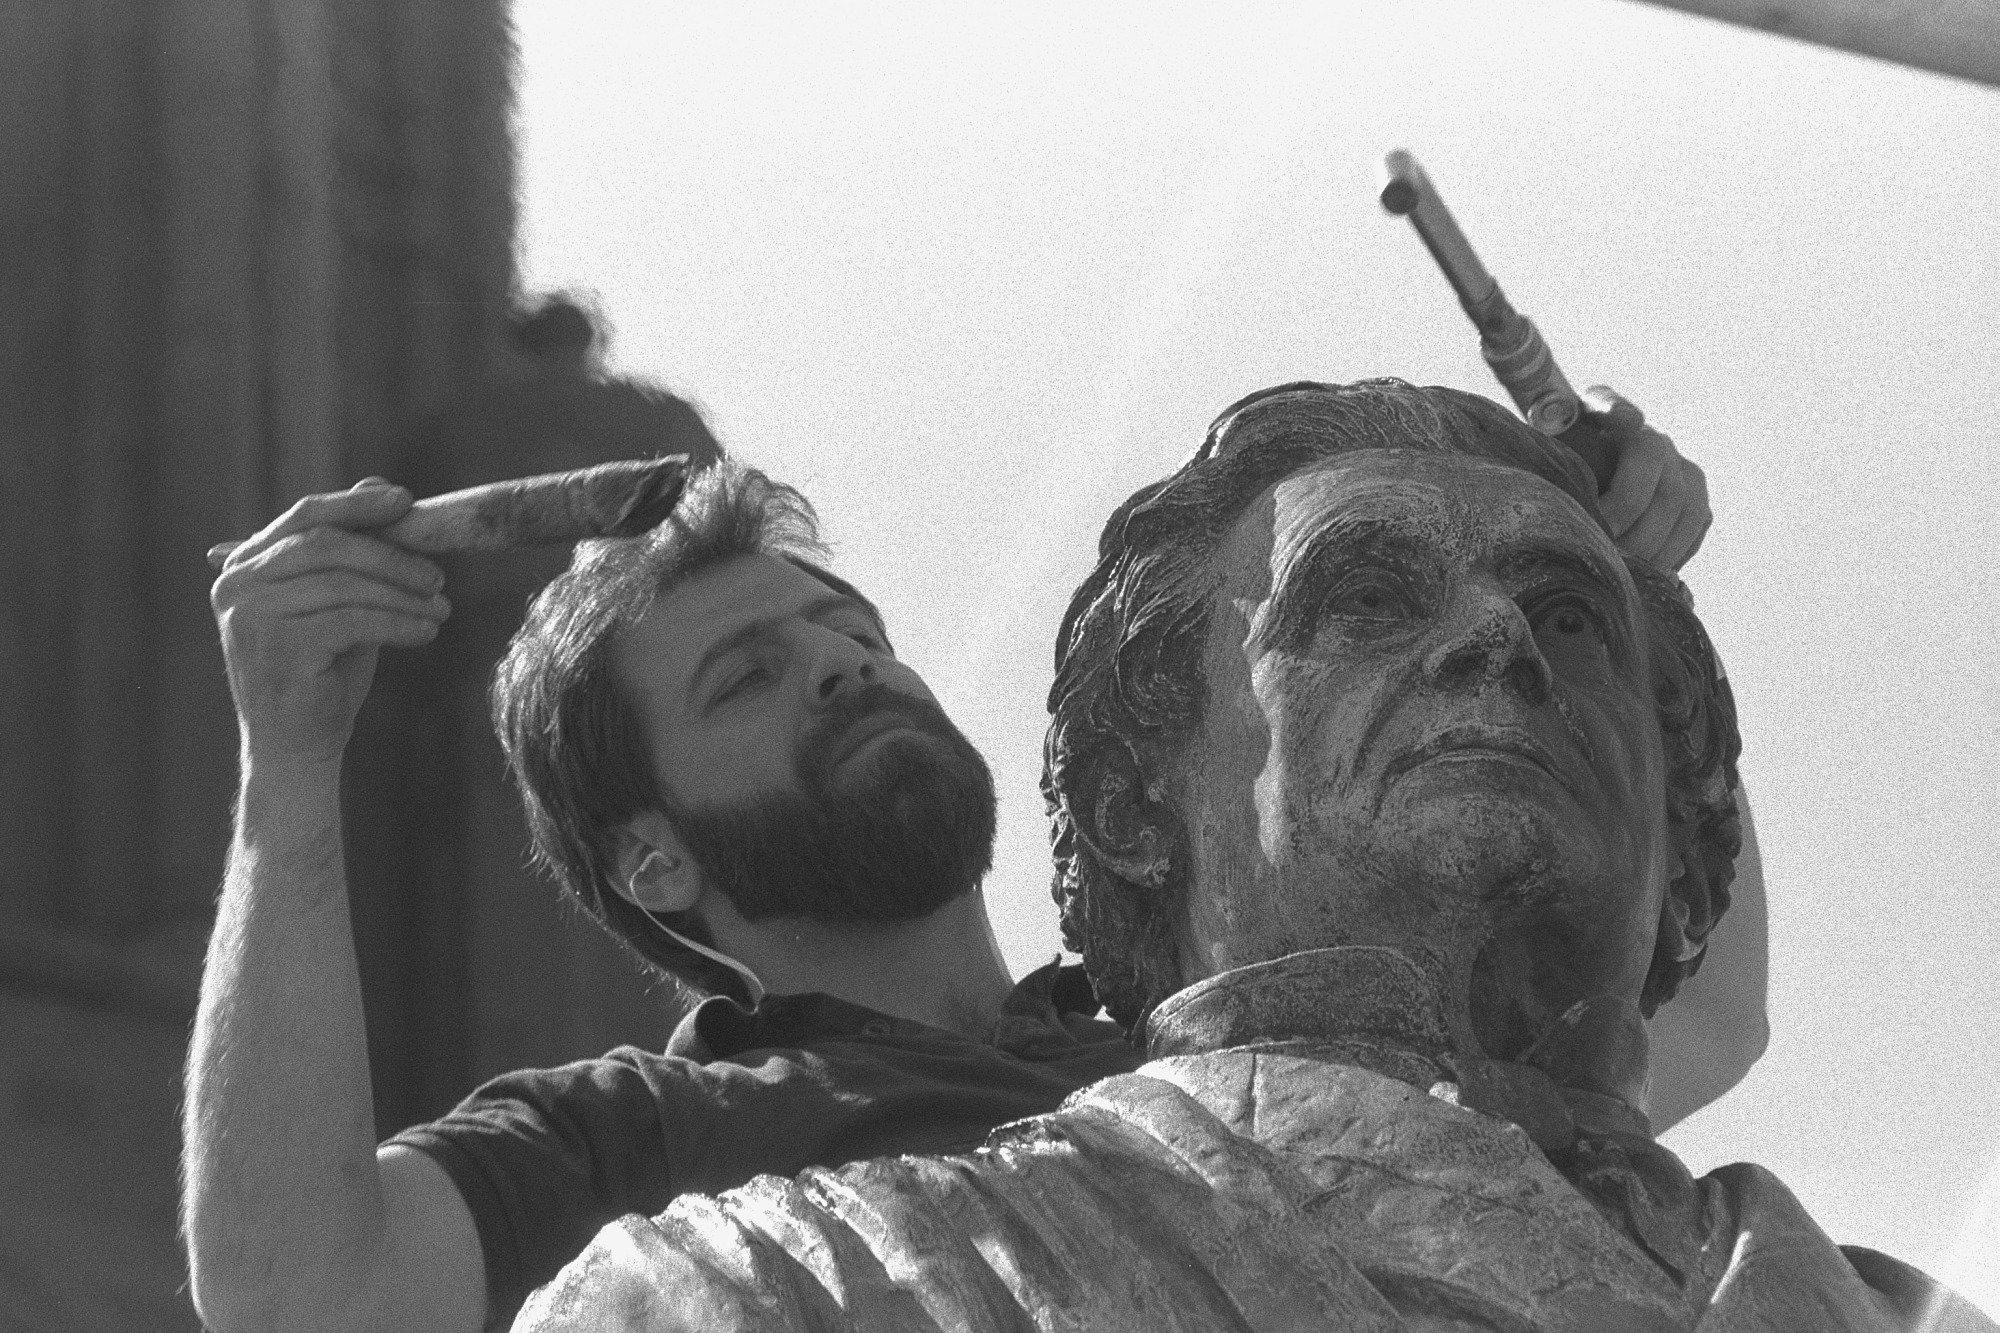 Steve Tatti Working on Joseph Henry Statue